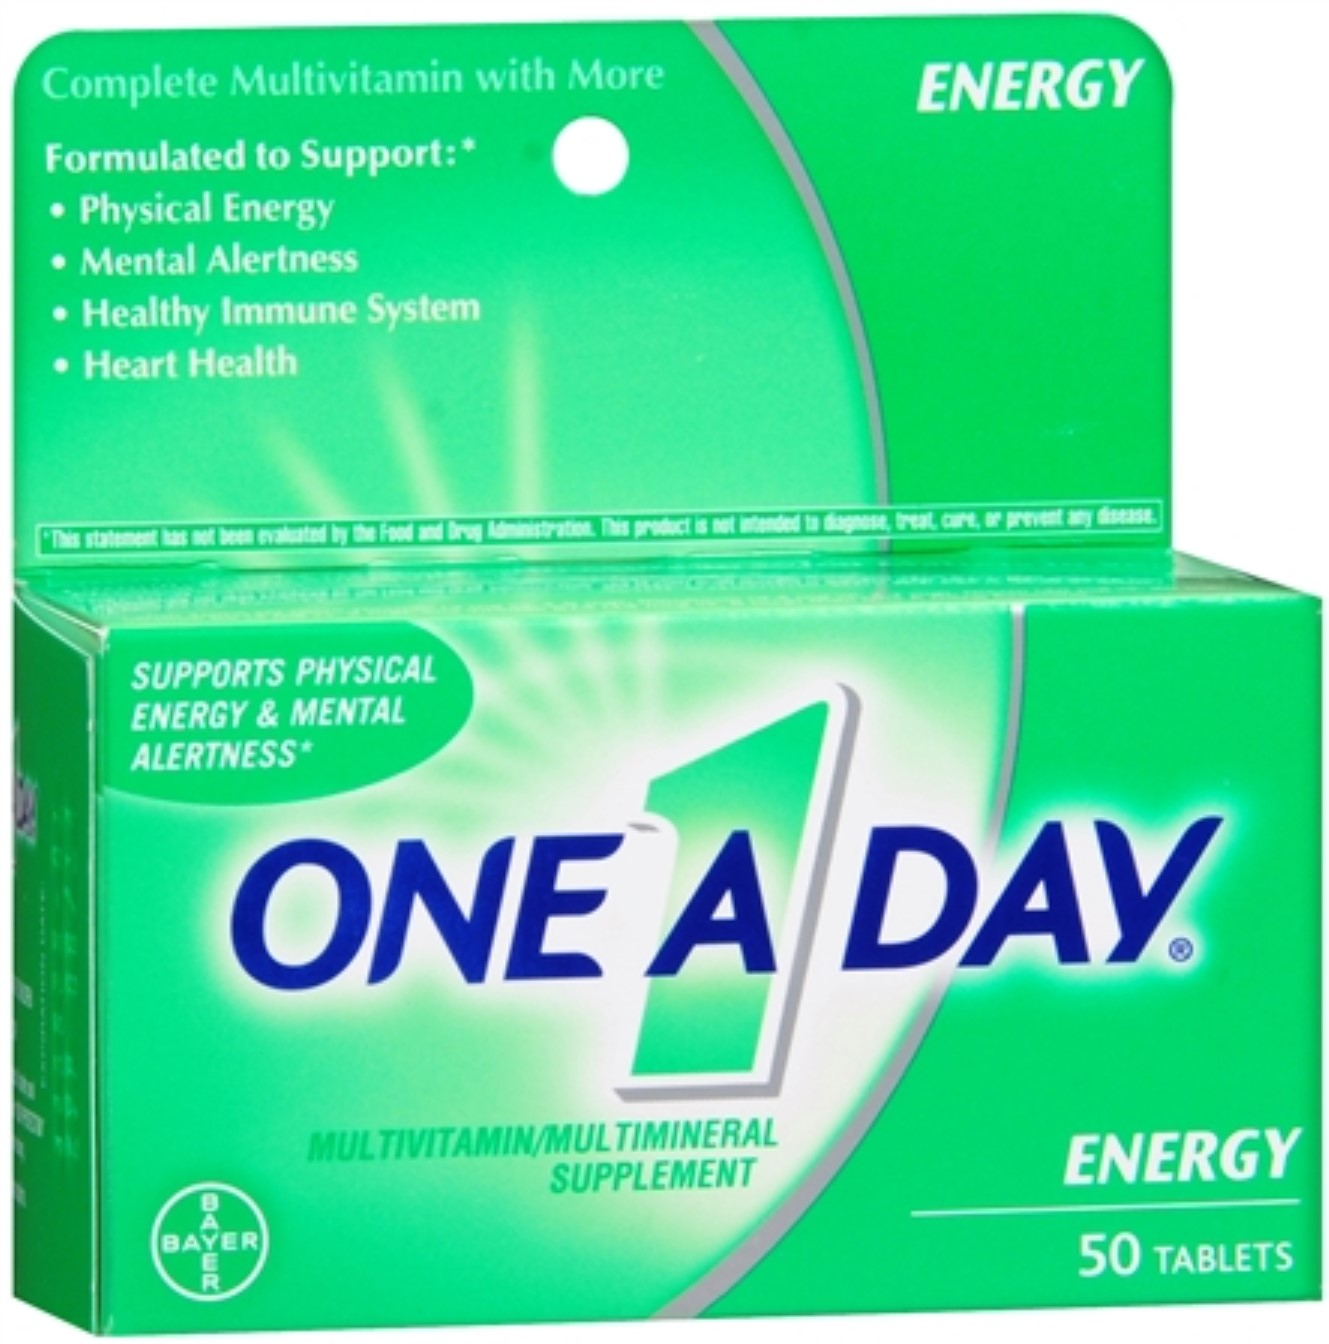 One-A-Day All Day Energy Tablets 50 Tablets (Pack of 4)